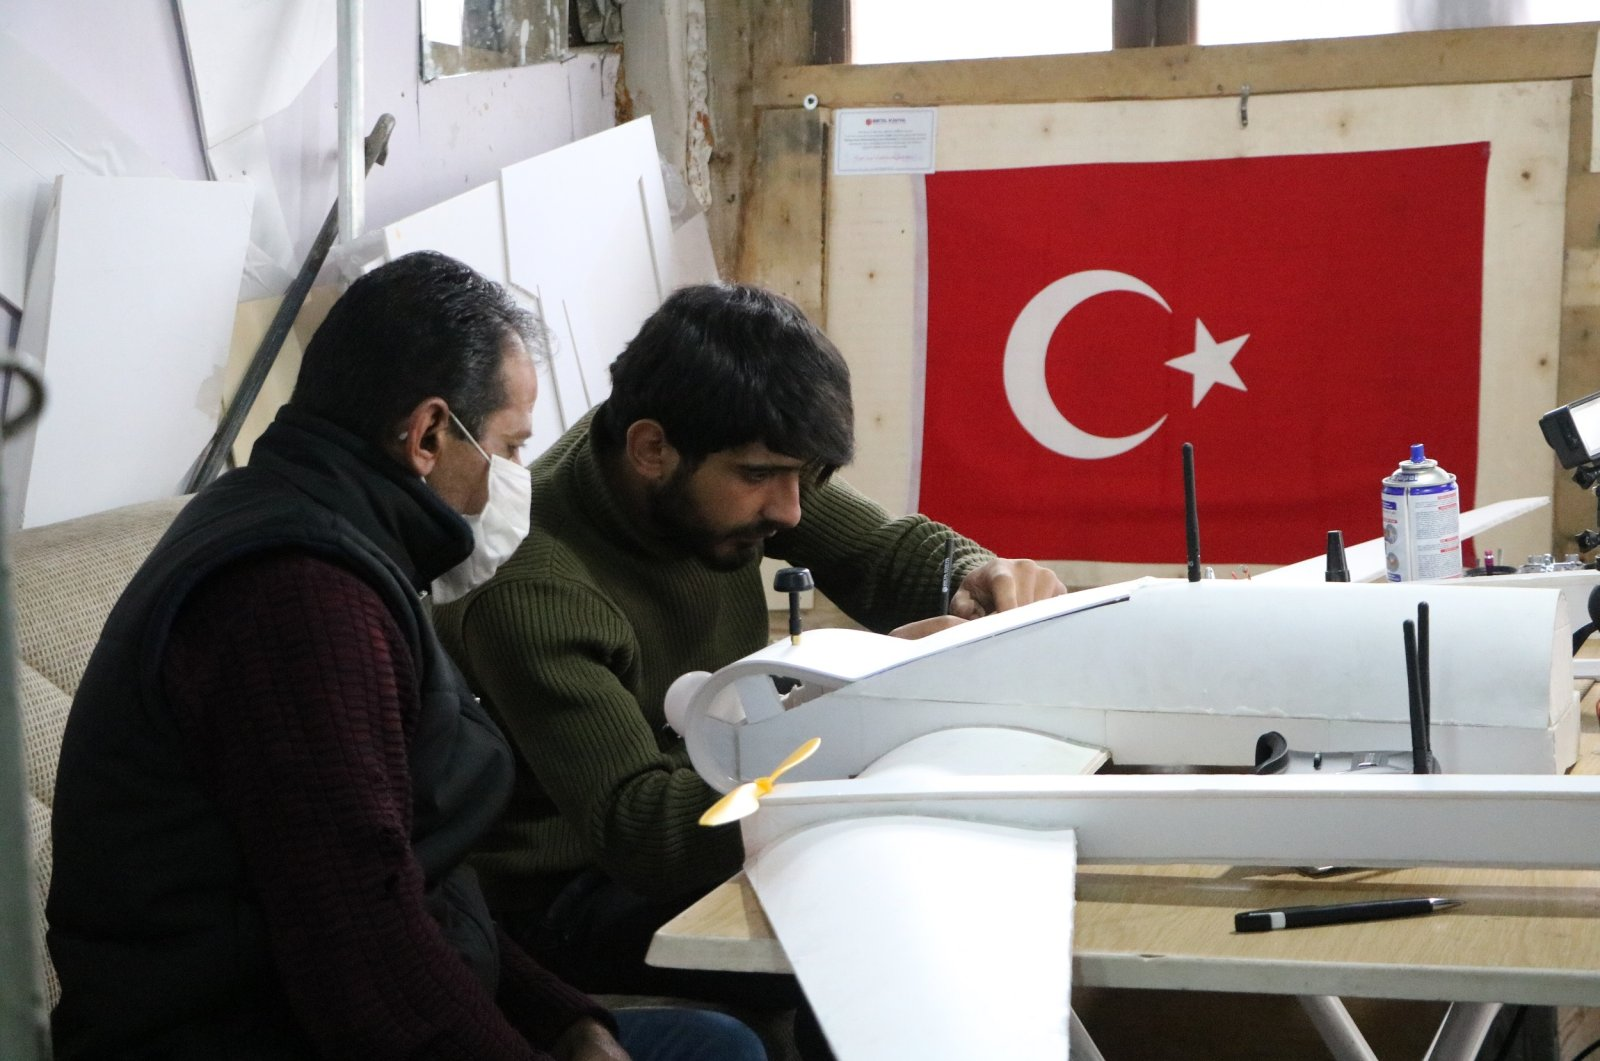 Savaş Tatlı (R), a contestant of TEKNOFEST 2020, and his father work on a model plane in their atelier in eastern Hakkari province on Dec. 17, 2020. (DHA Photo)